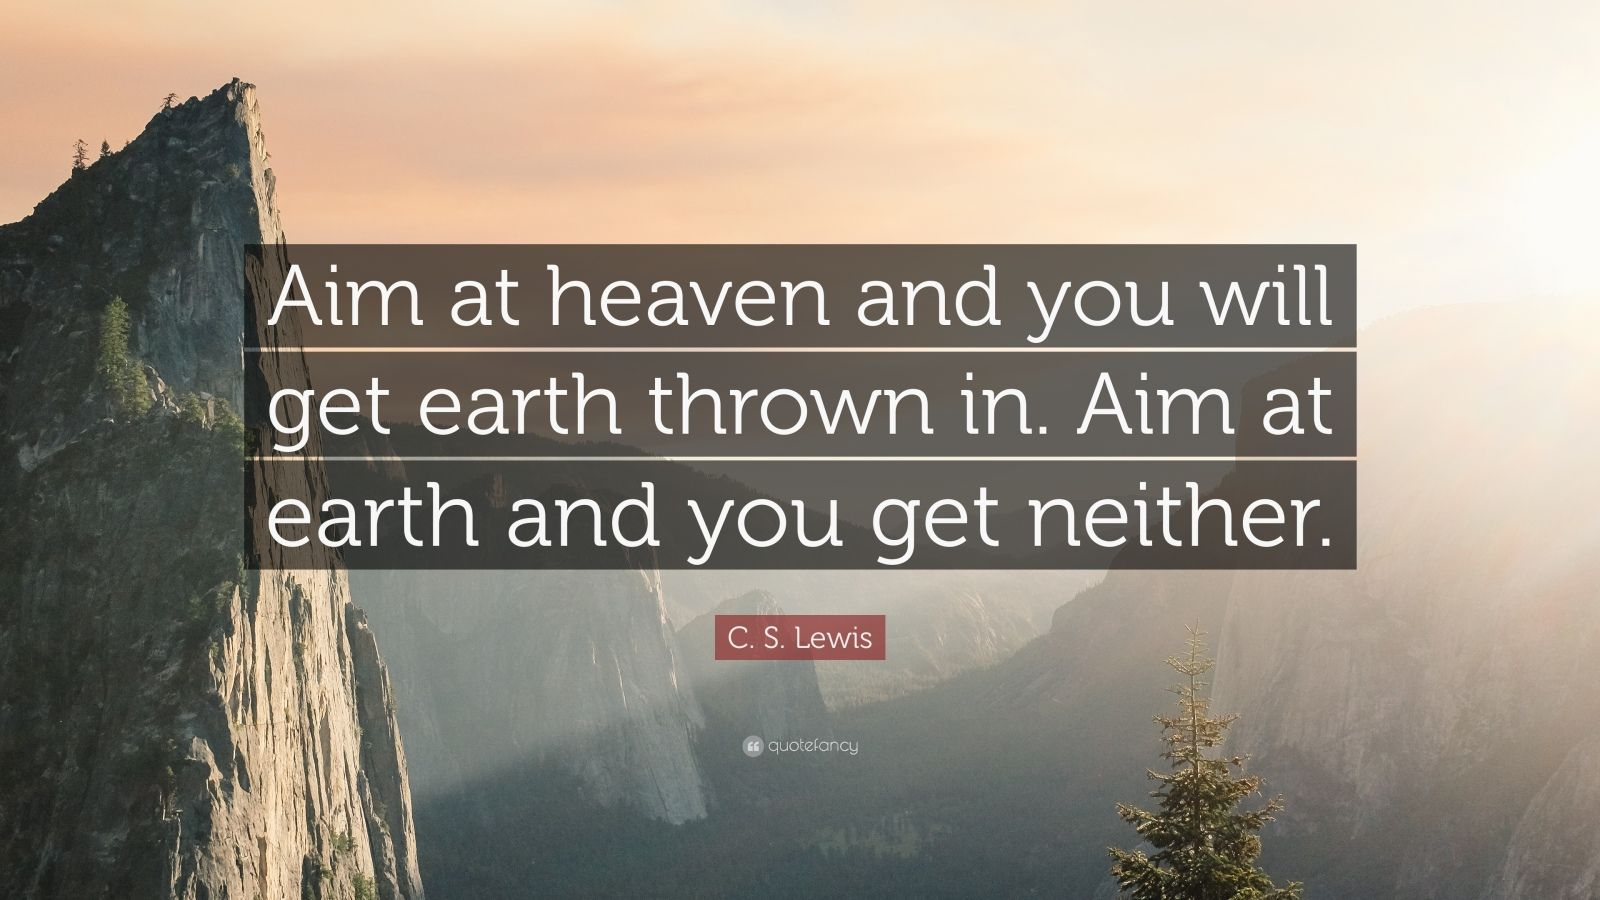 Henry David Thoreau Wallpaper Quote C S Lewis Quote Aim At Heaven And You Will Get Earth